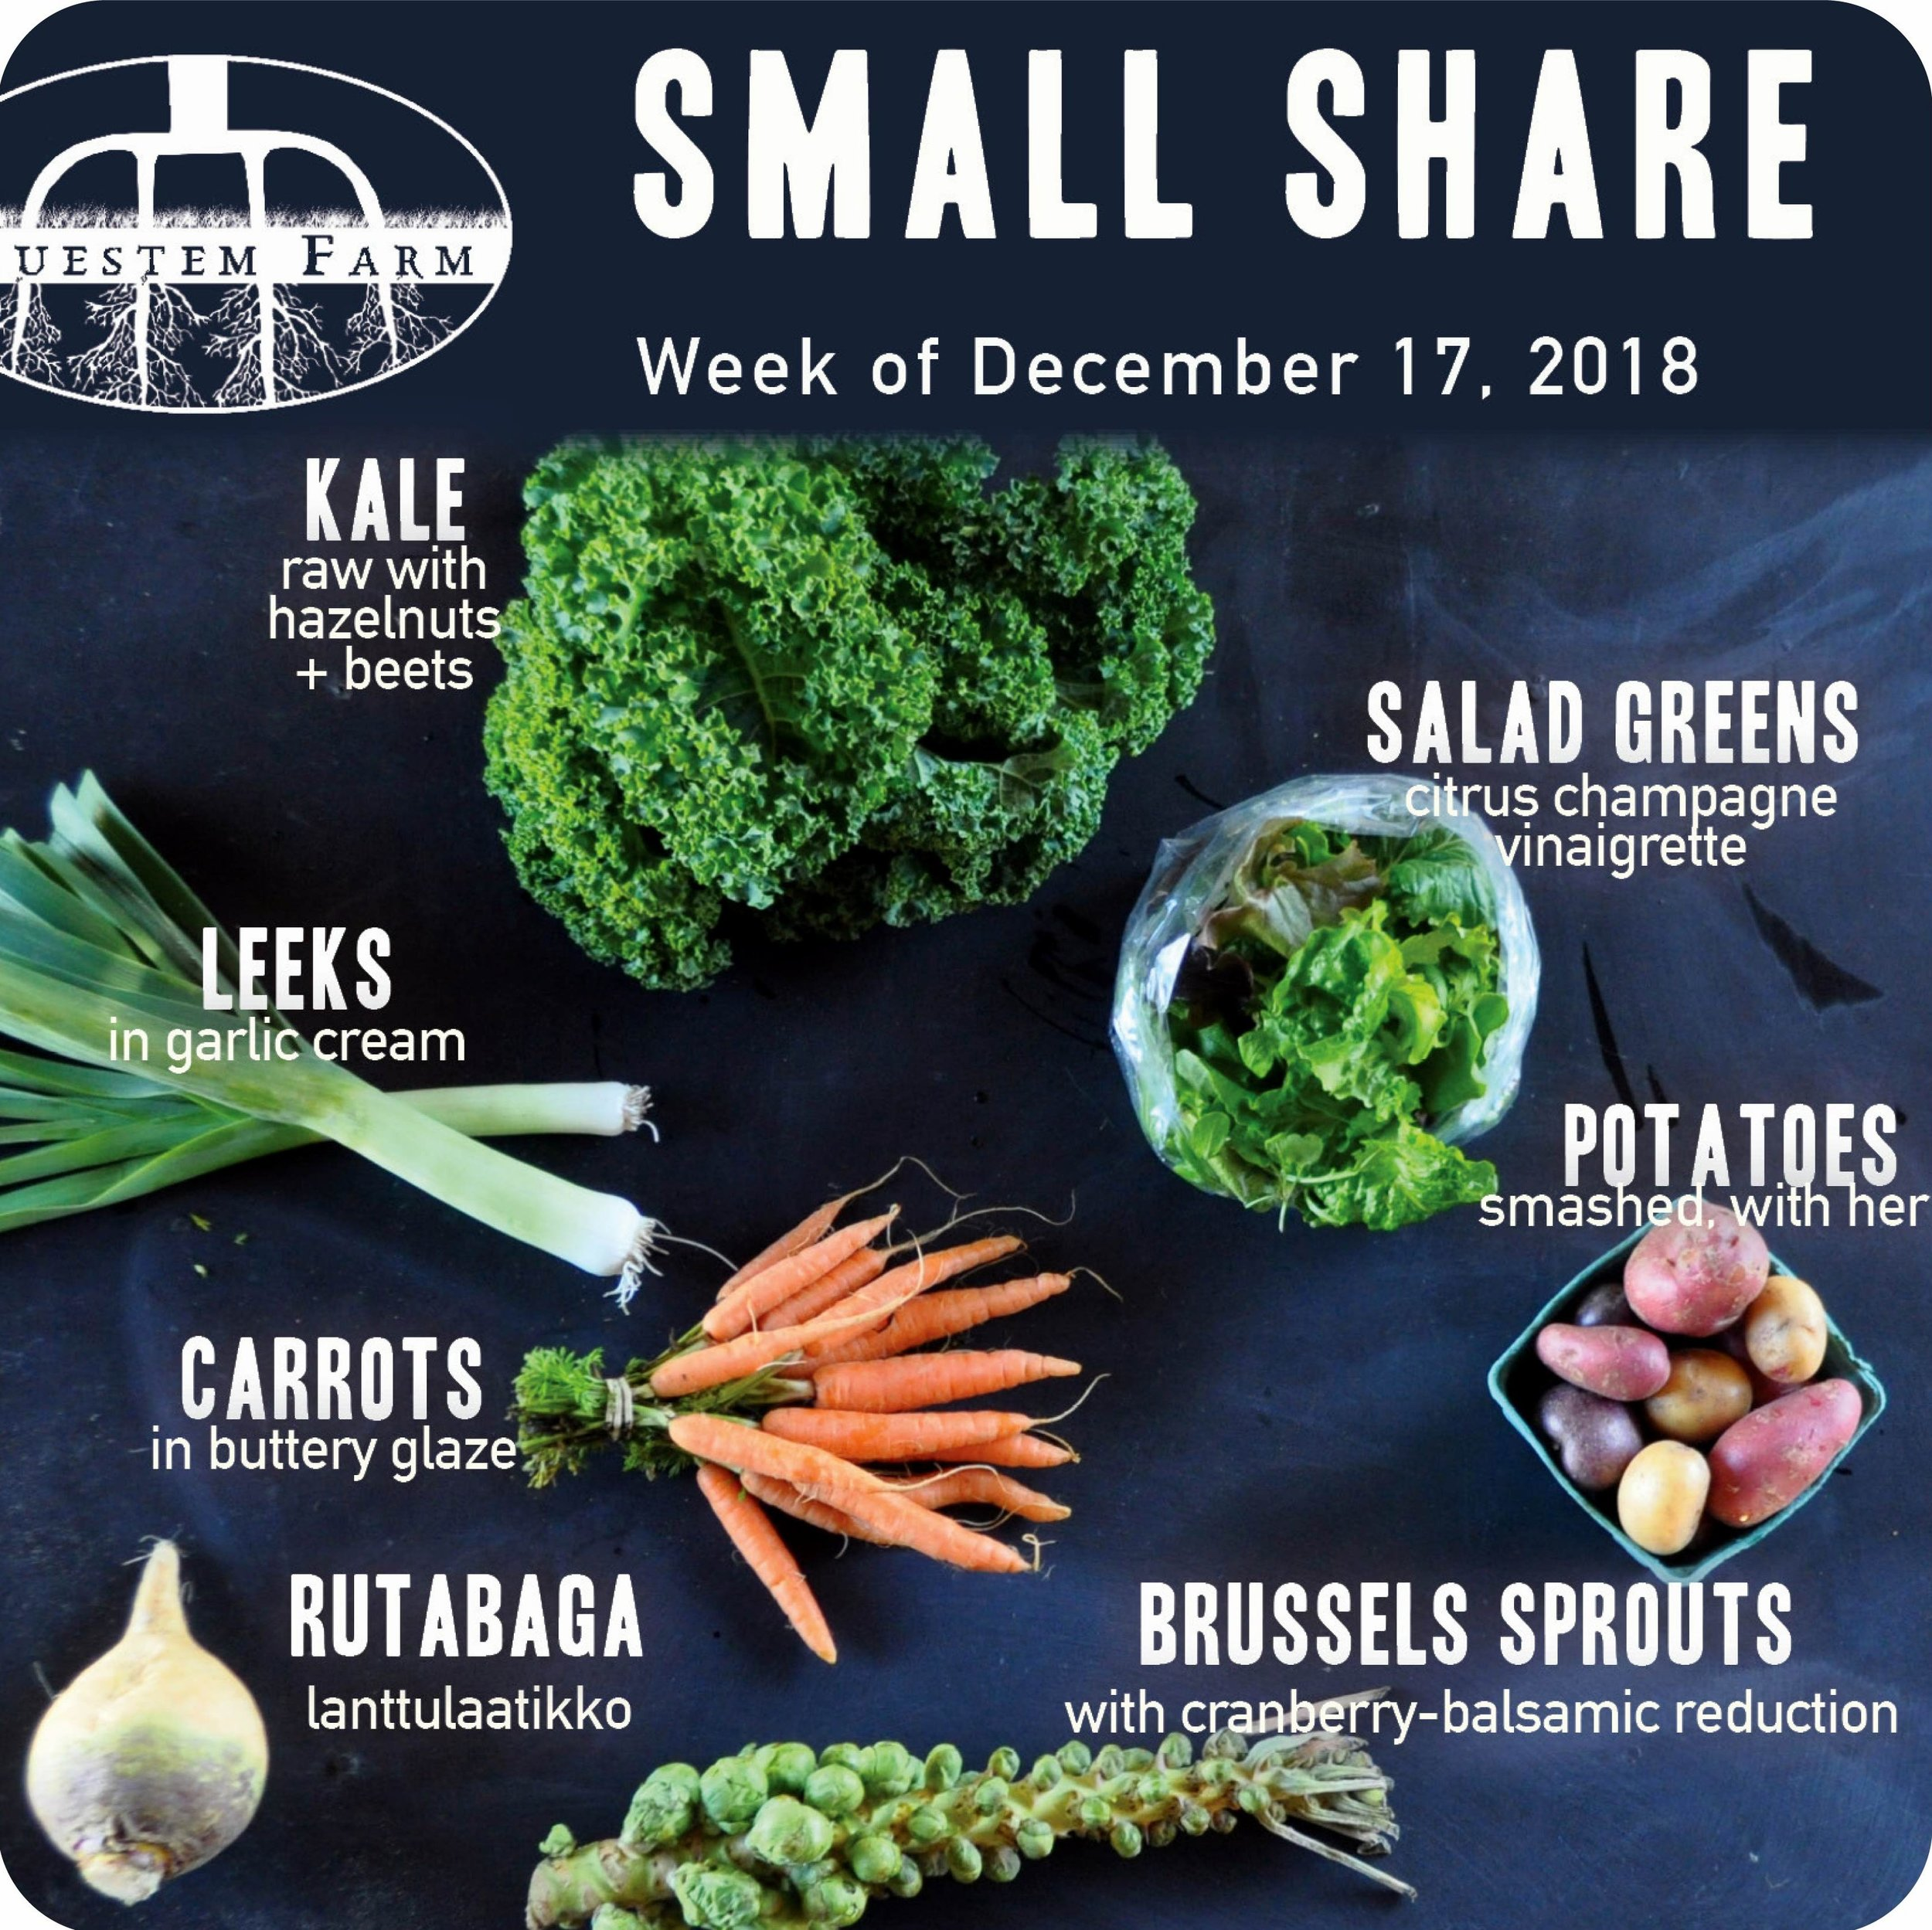 Small Share Example